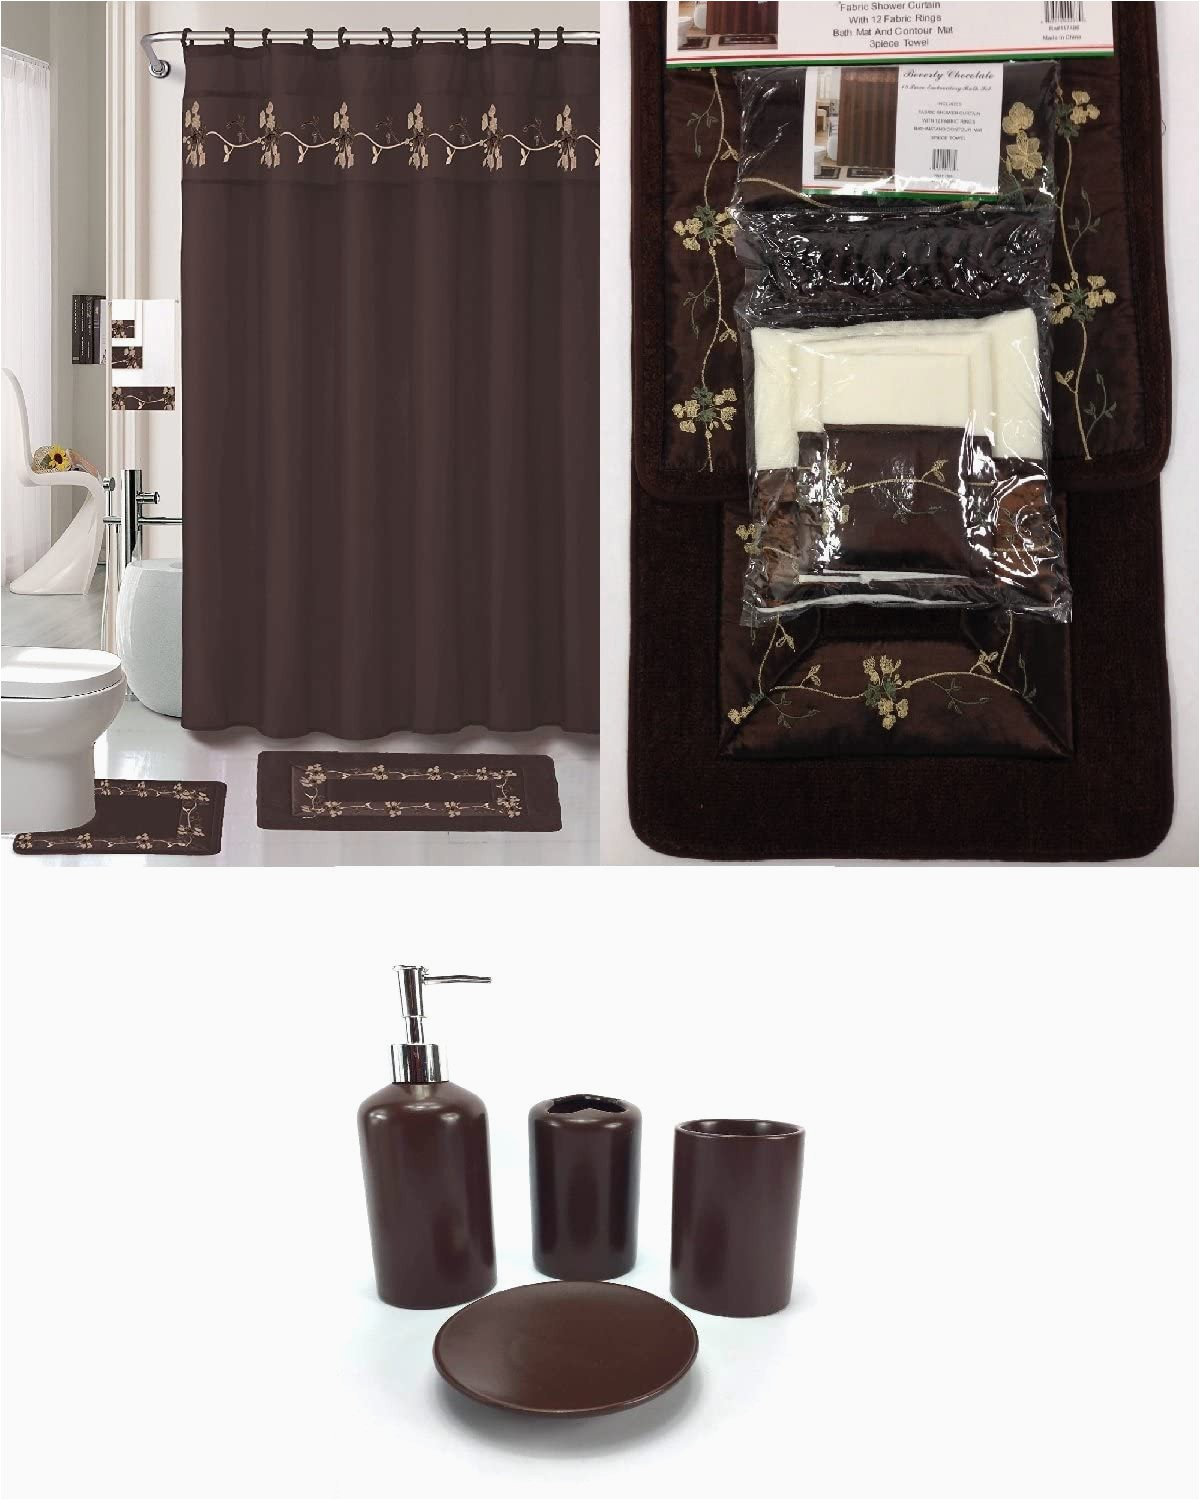 Dark Brown Bathroom Rug Sets 22 Piece Bath Accessory Set Beverly Chocolate Brown Bathroom Rug Set Shower Curtain & Accessories